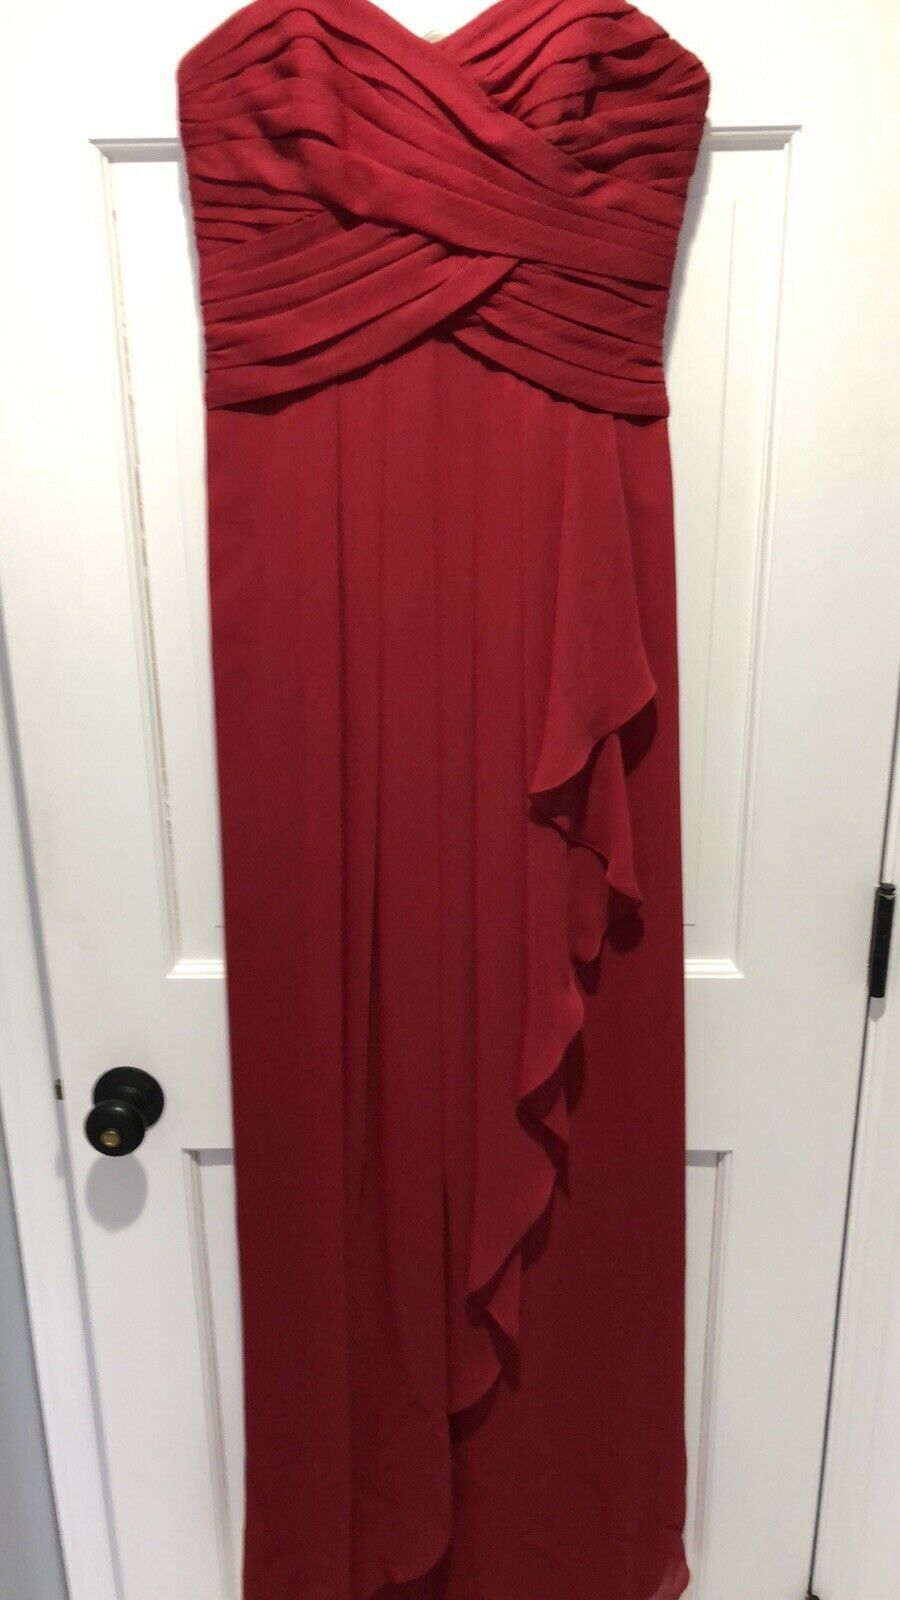 DAVIDS BRIDAL 4 Red Chiffon Ruched Bodice Ruffled Formal/Bridesmaid Dress